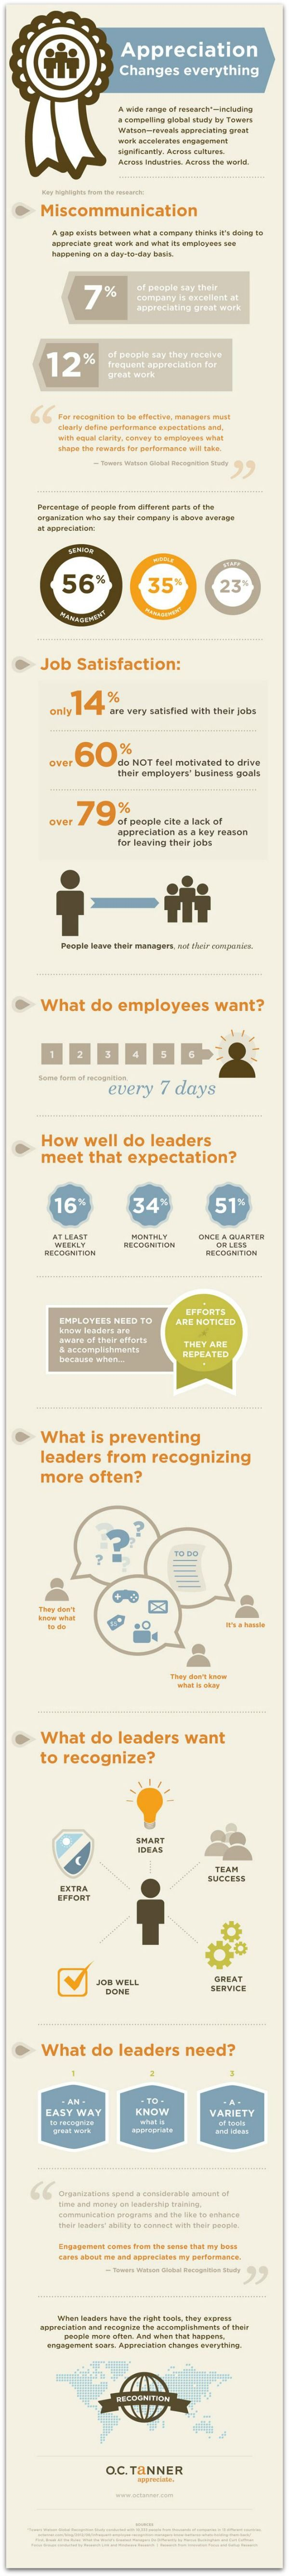 #Infographic: Only 12 percent of people receive frequent appreciation at work